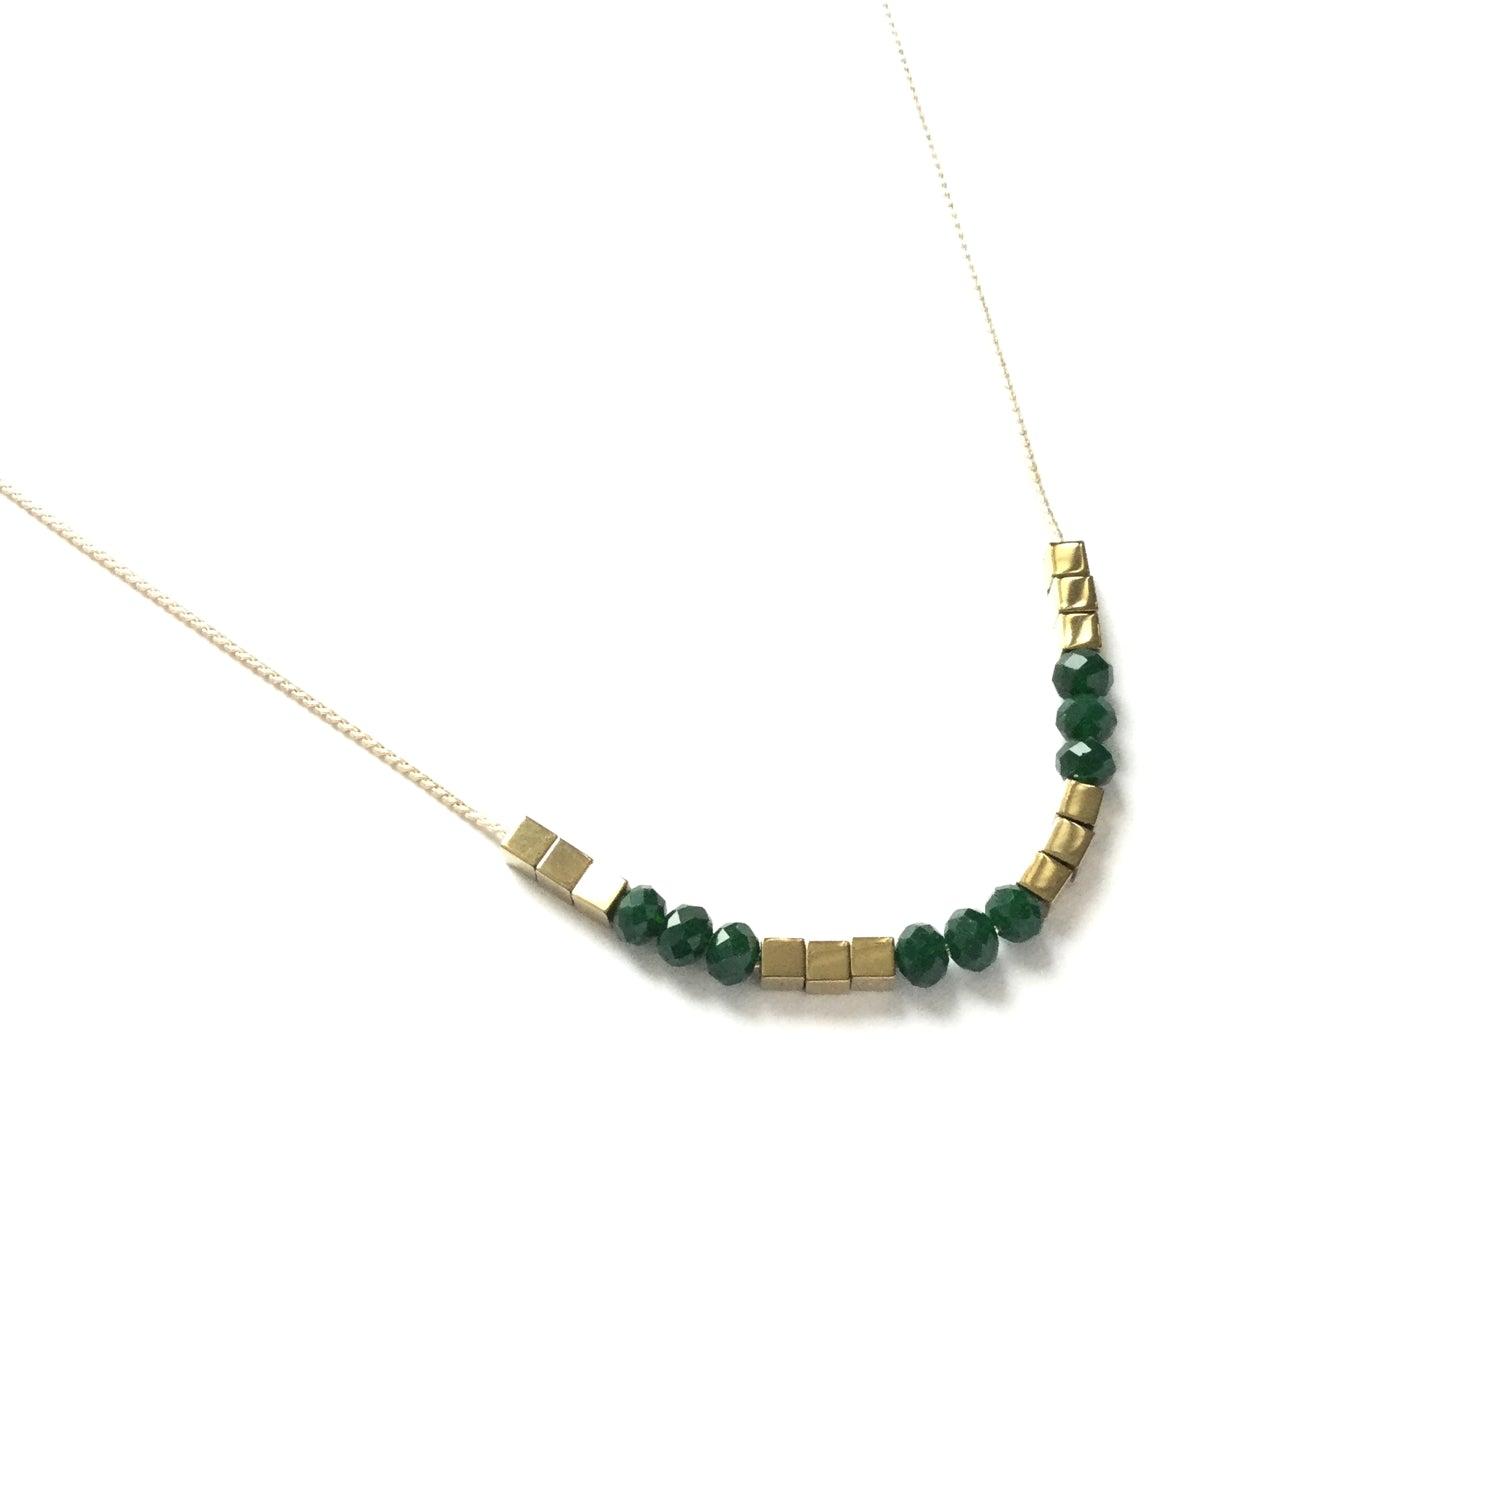 Gold square hematite beads spacers with faceted emerald green glass bead necklace